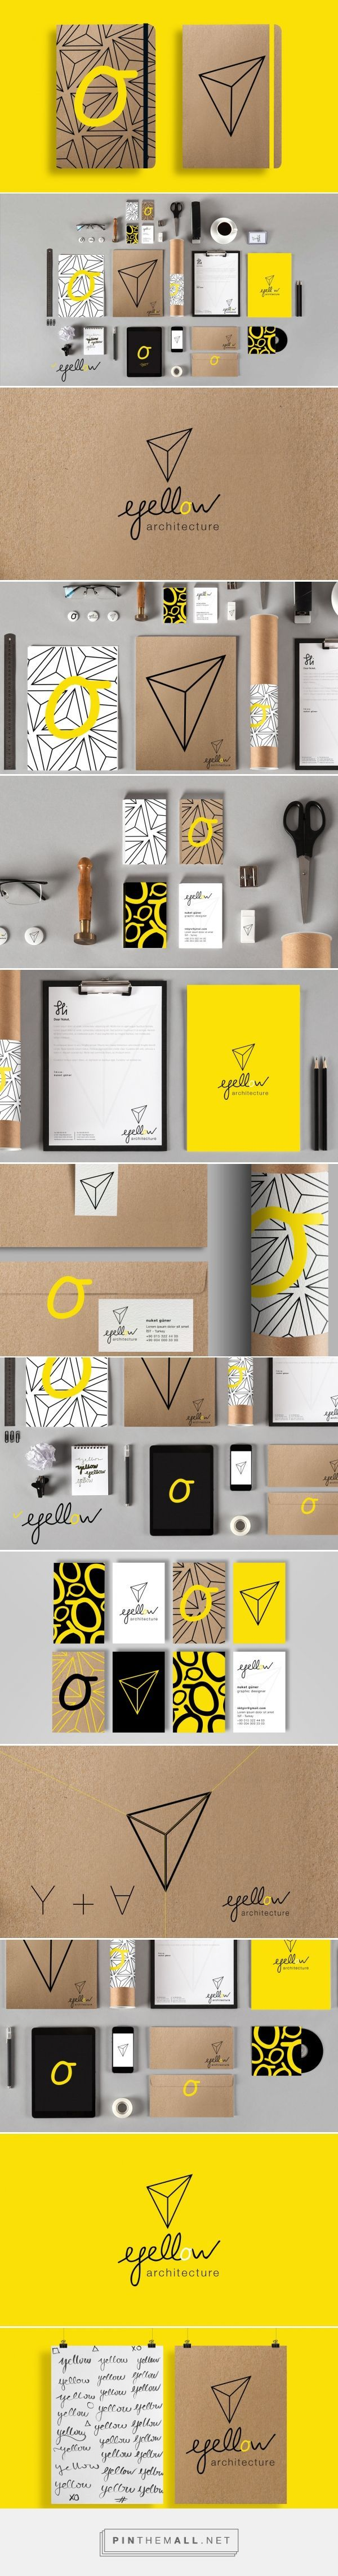 Yellow Architecture Branding by Nuket Guner Corlan | Fivestar Branding – Design and Branding Agency & Inspiration Gallery